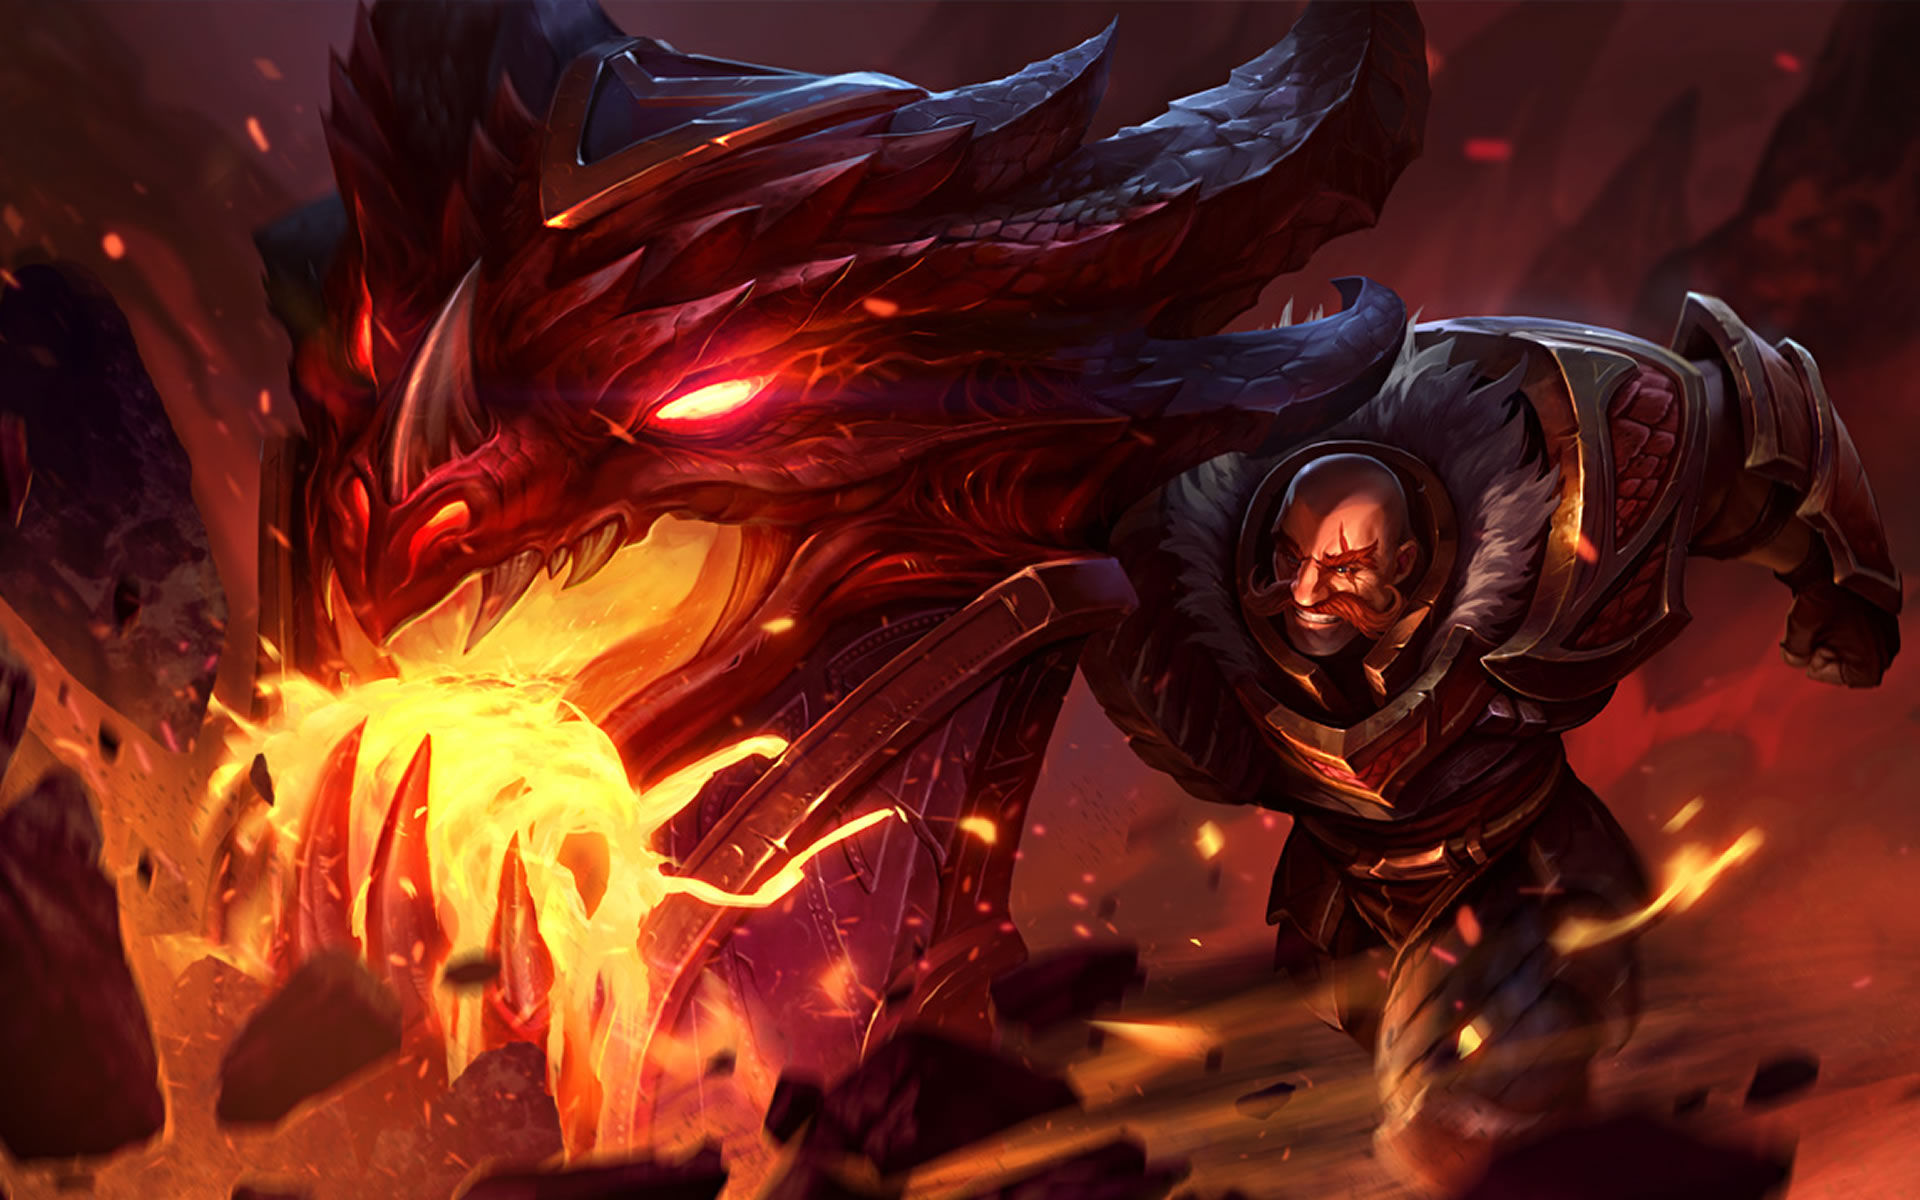 Dragonslayer Braum wallpaper